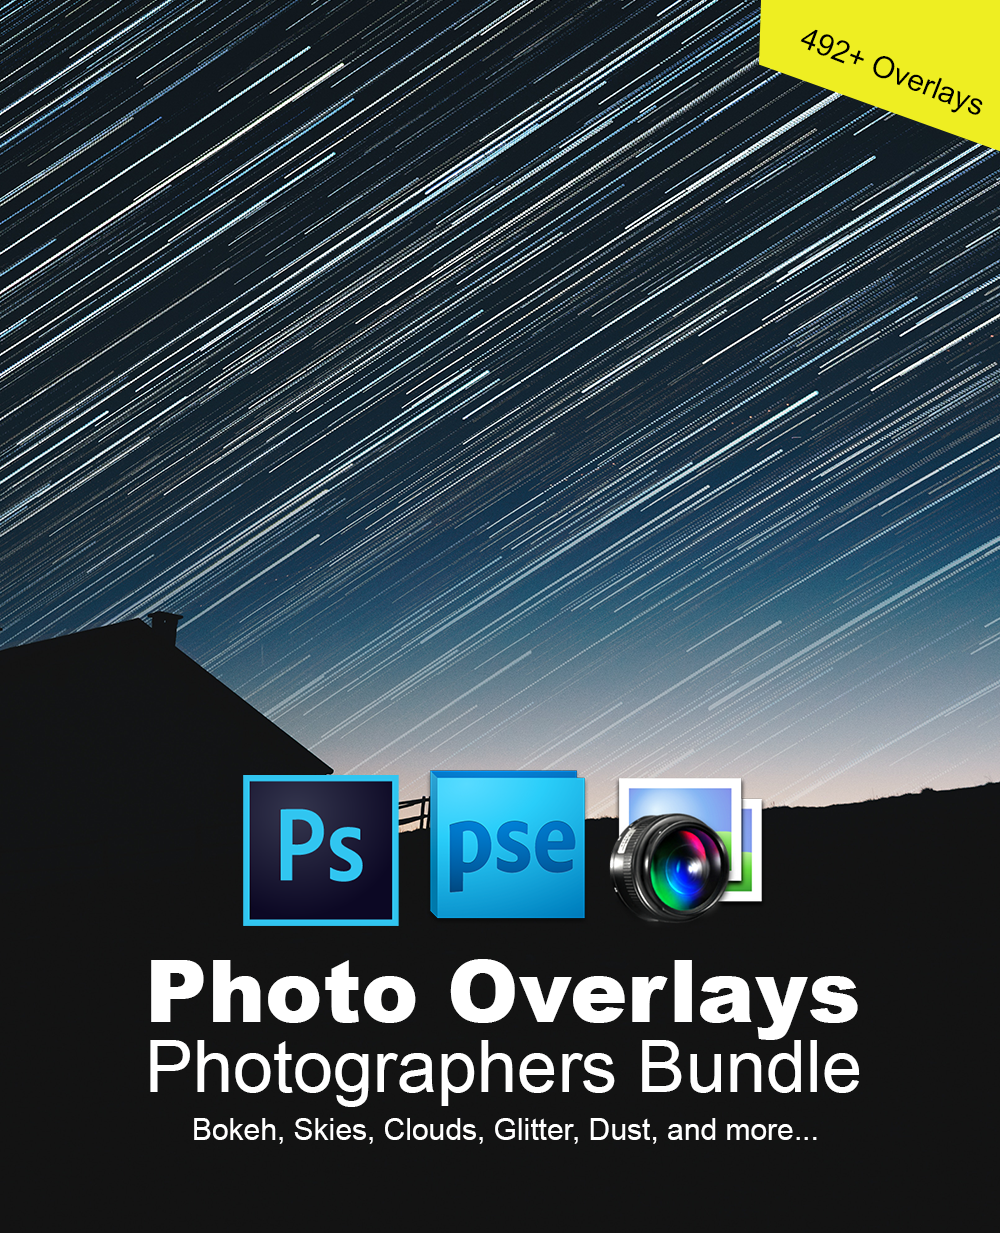 492+ Photoshop Overlays - MAMMOTH Collection - Bundle of Photo Overlays for Photographers Great for Enhancing Photos [Download]